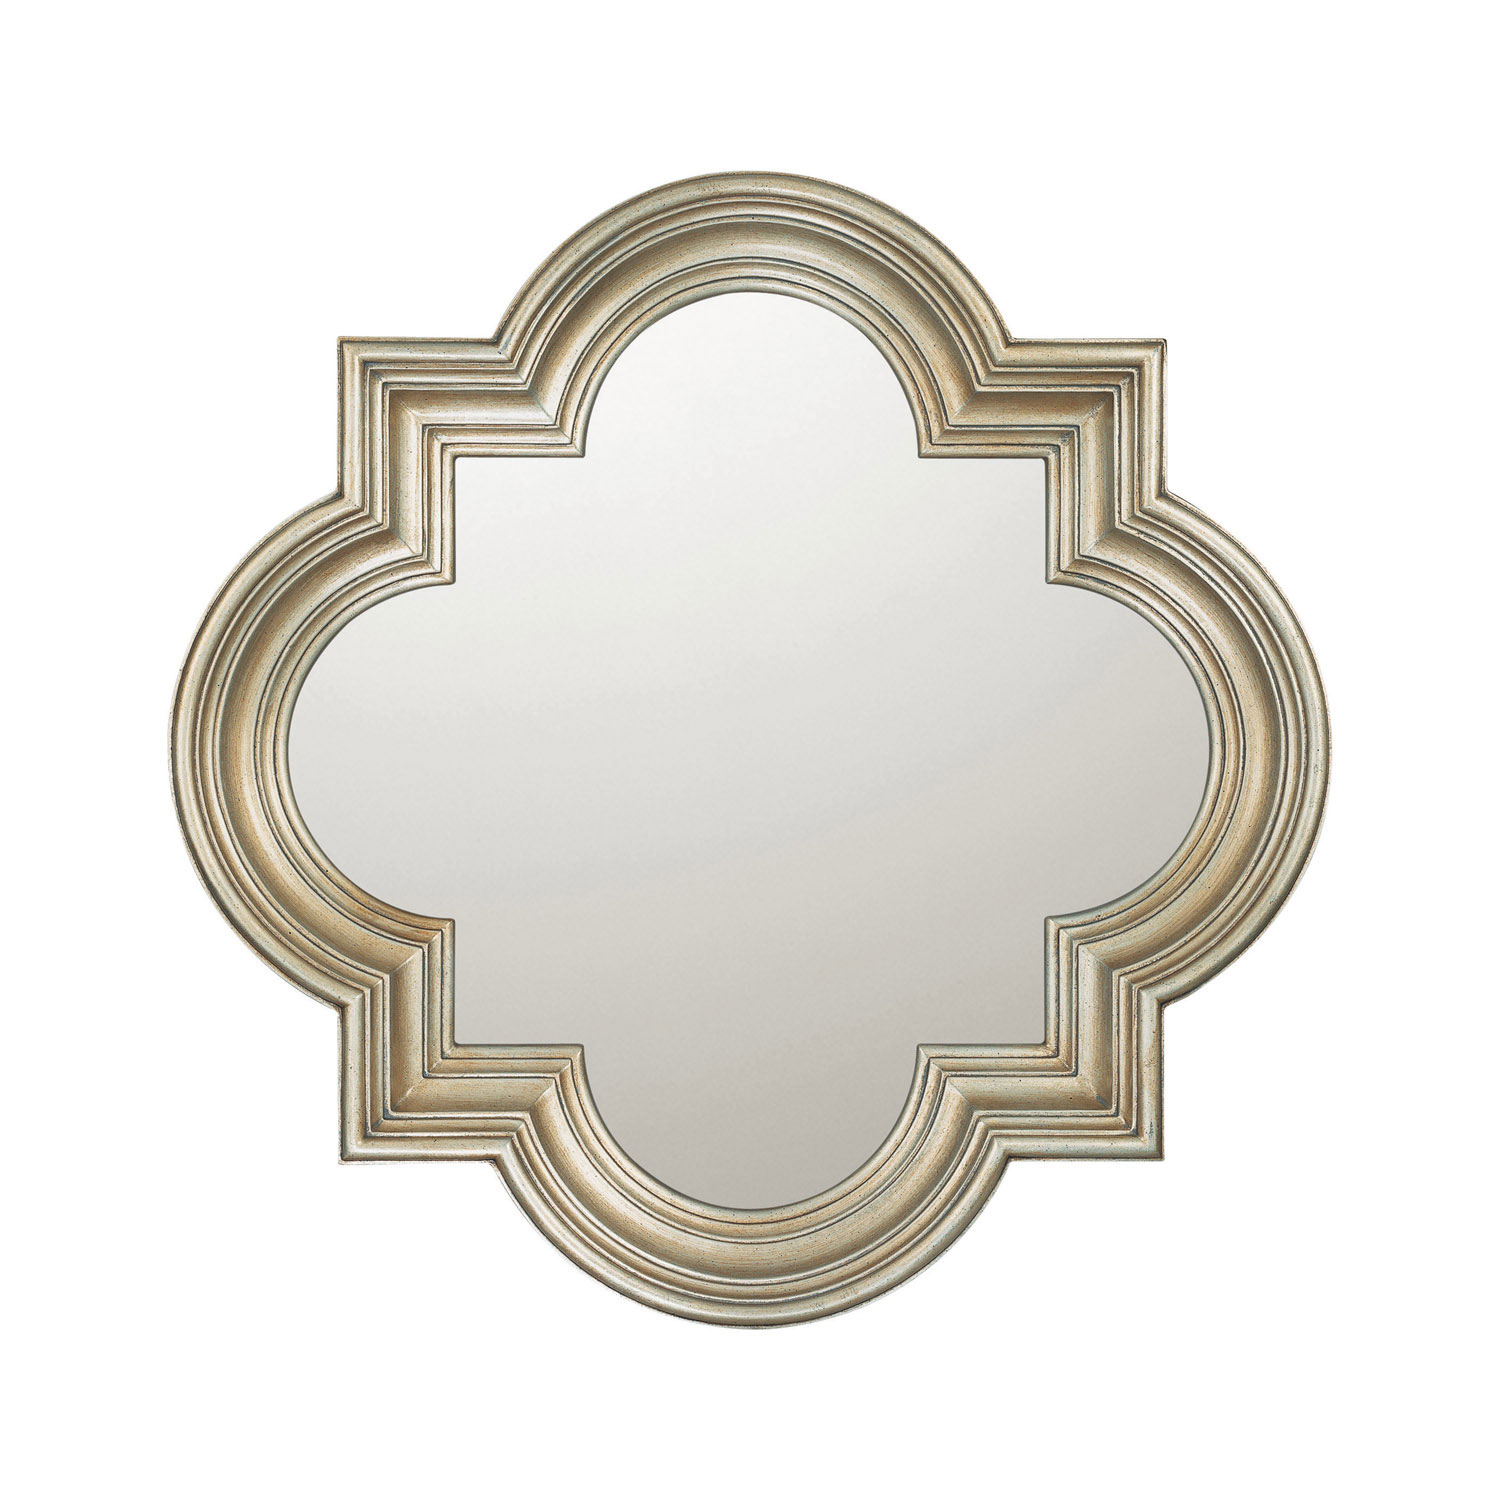 Decorative Mirror from the Mirror collection by Capital Lighting M282848